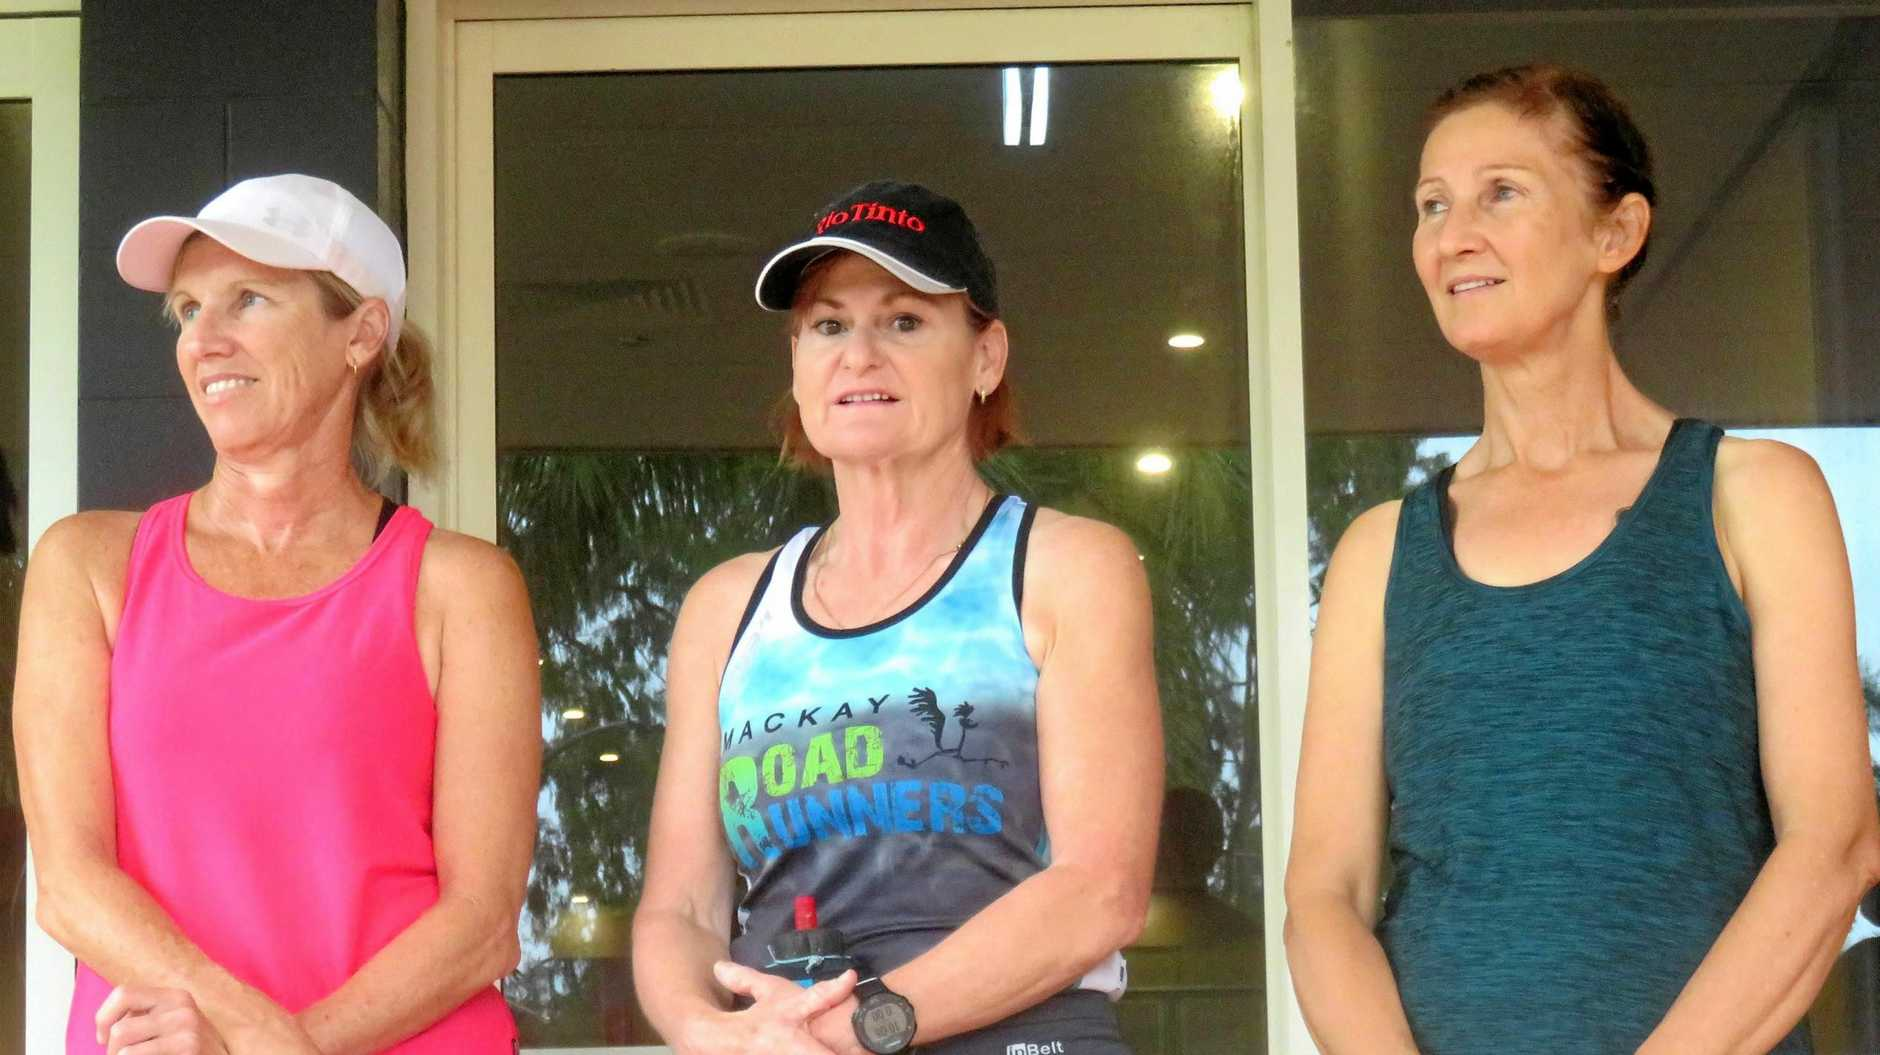 Mackay Road Runners Club secretary Glynis Forse (left) catches up with Jo Skinner(centre) and Hannah Allen pre-race.